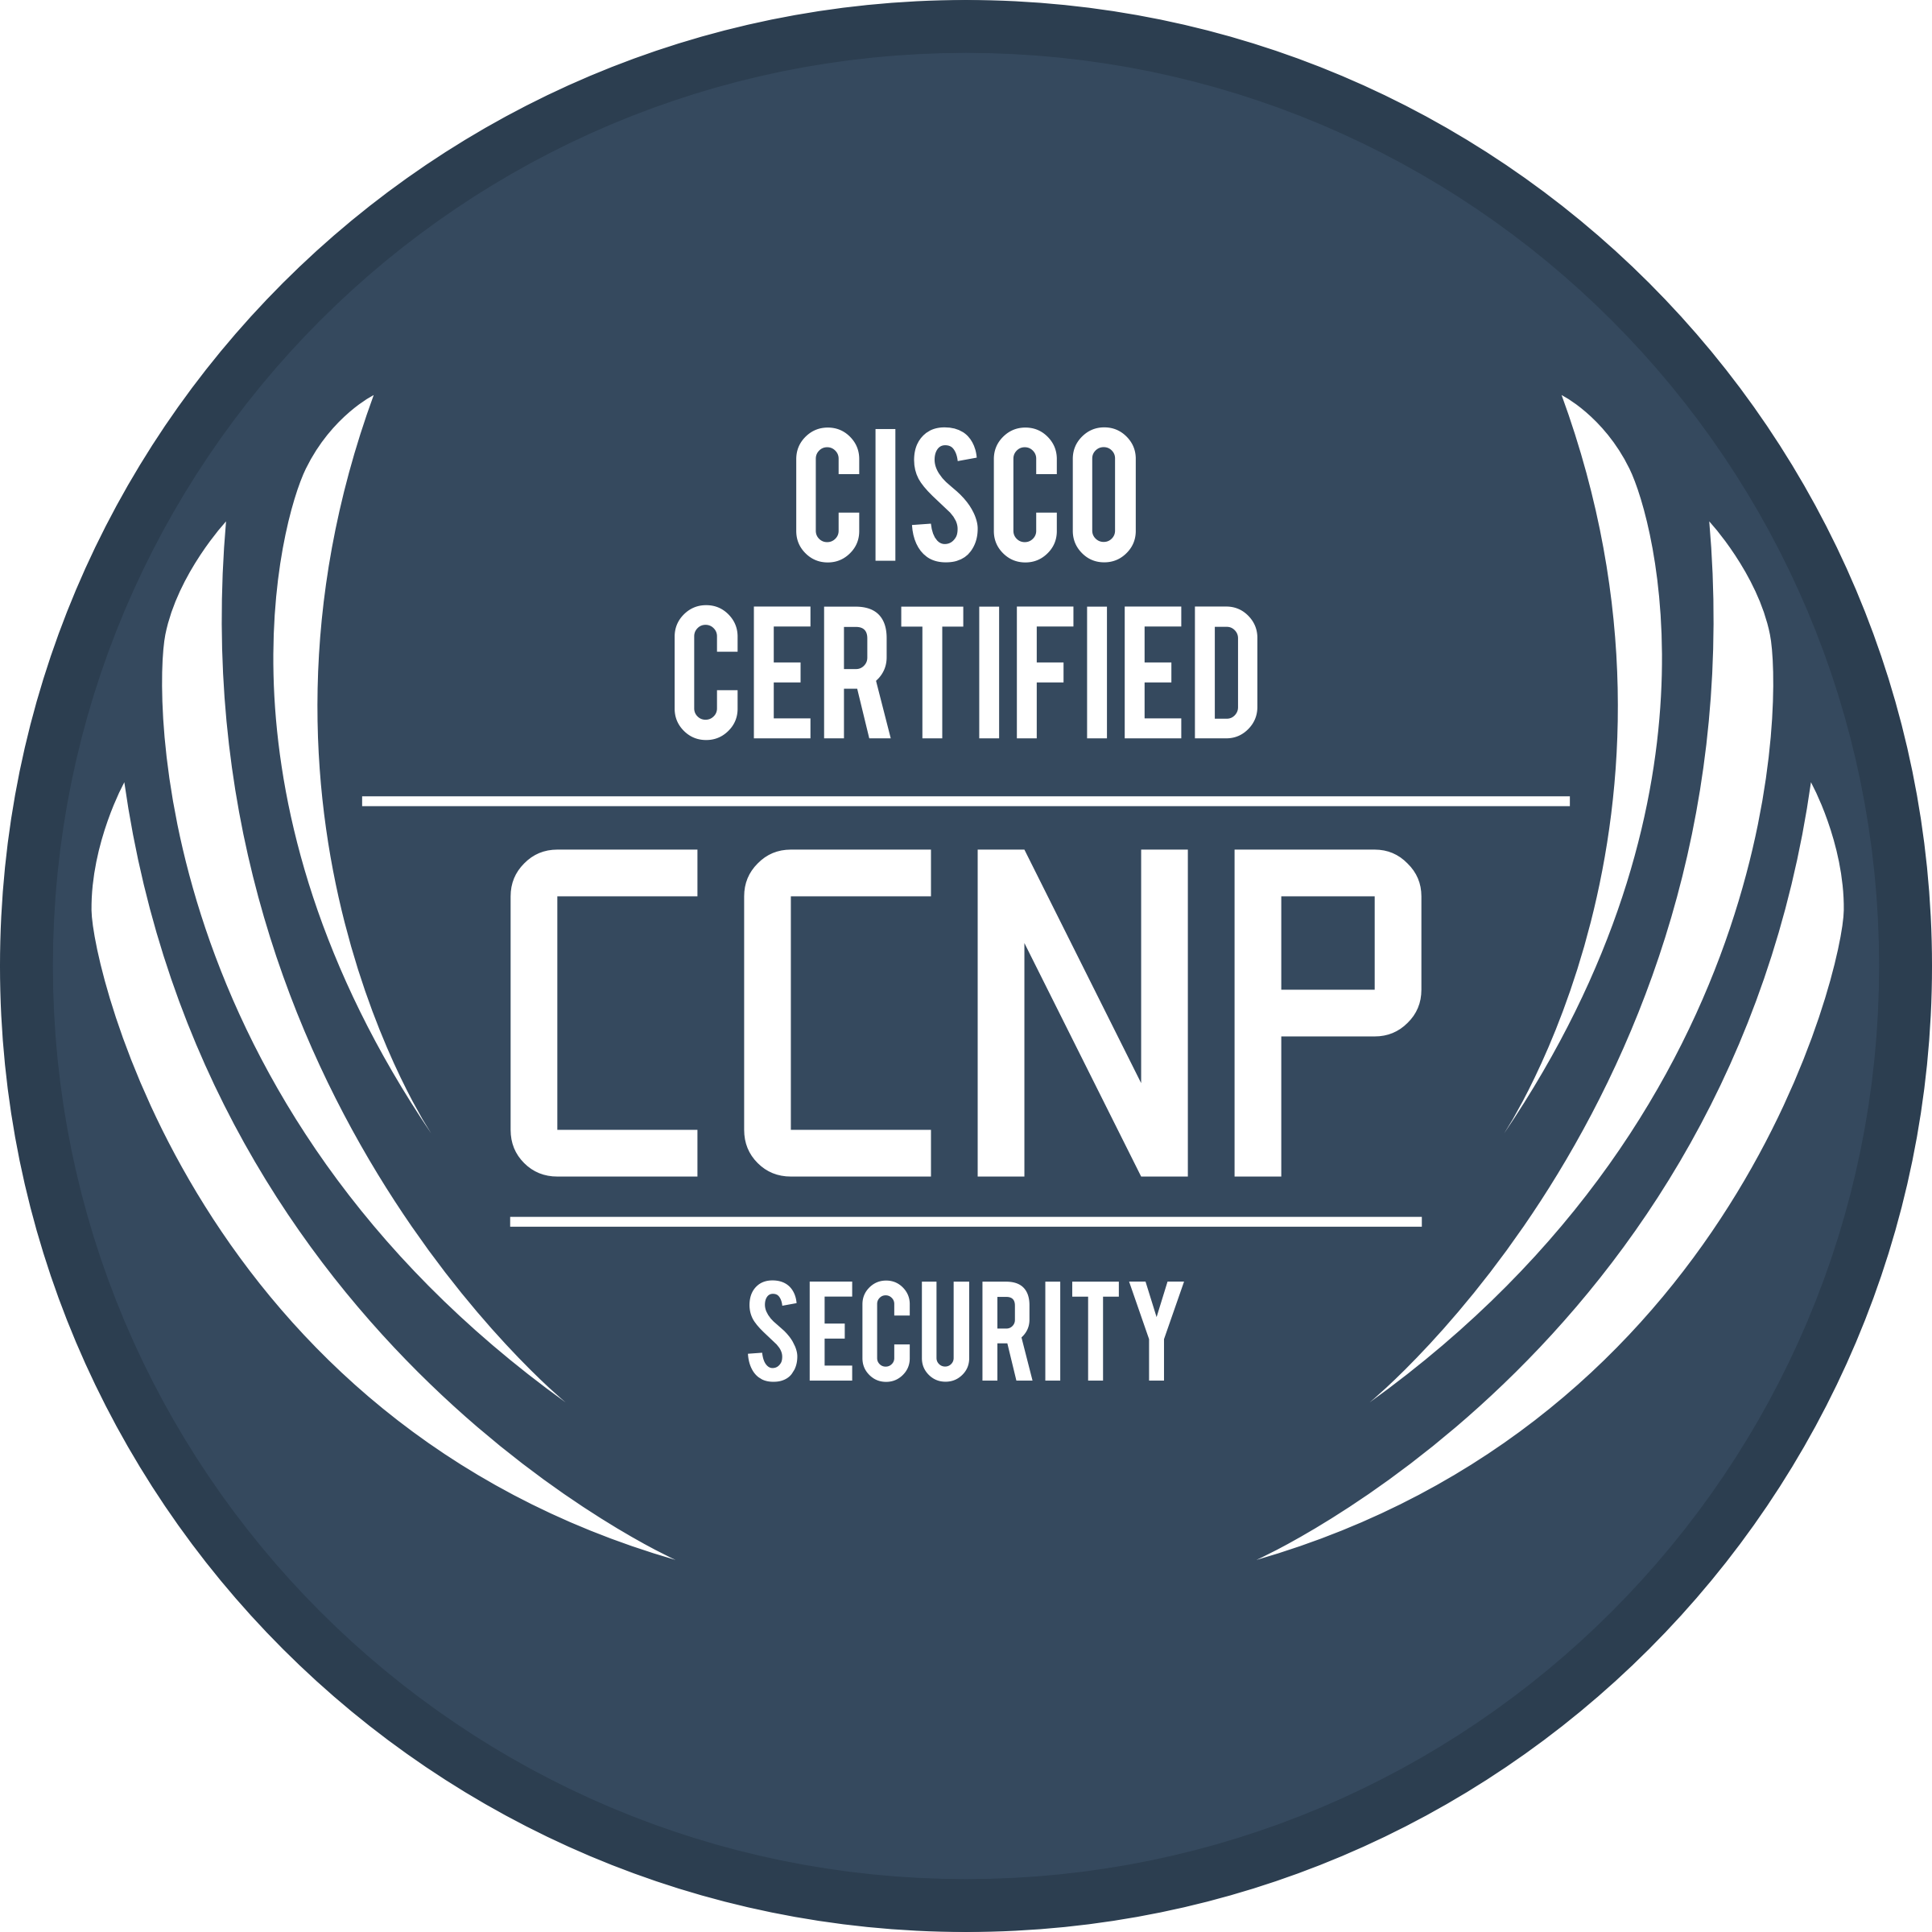 CCNP Security by Yudha Agung Pribadi